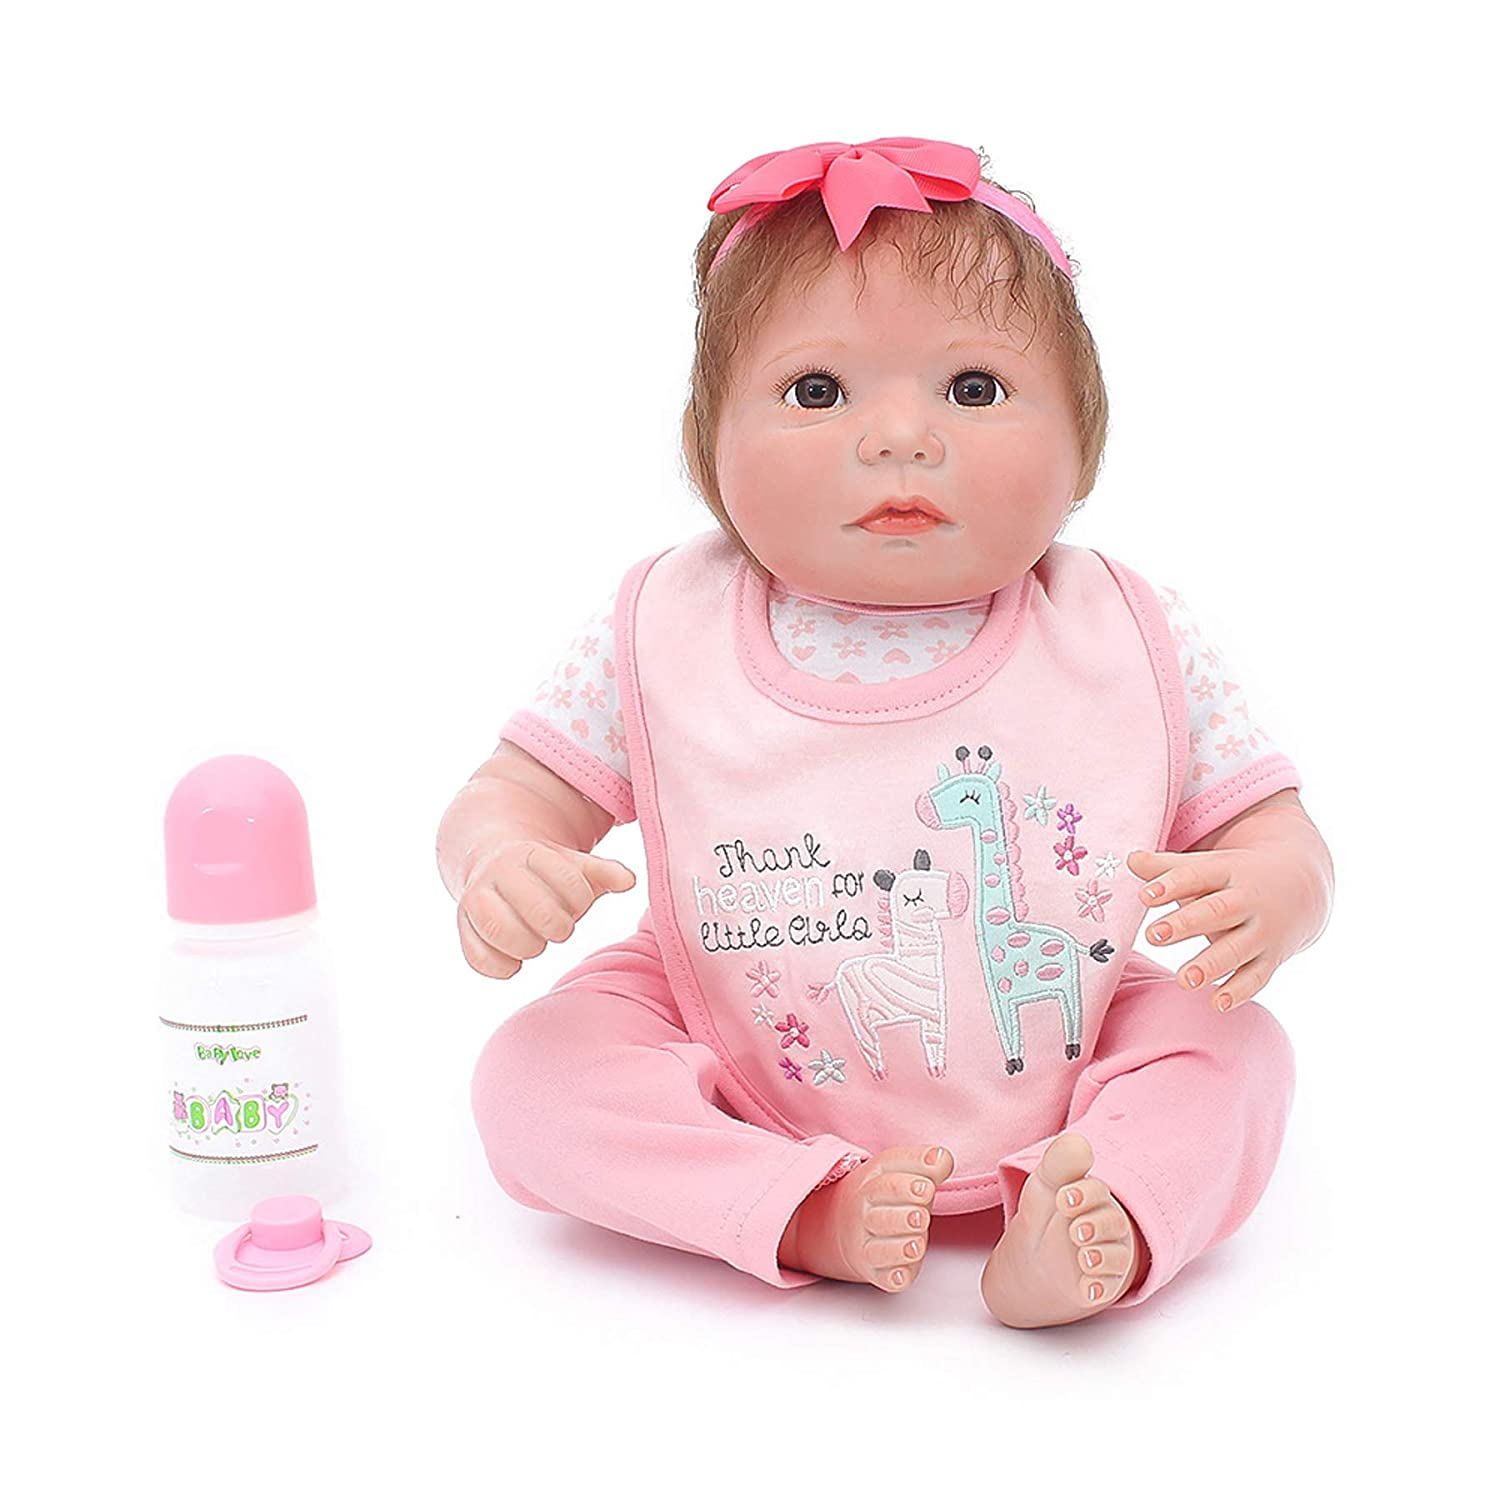 Warmdoll Real Life Reborn Baby Doll, 19 inch Girl Doll Crafted in Vinyl Like Silicone and Weighted Cloth Body Otard